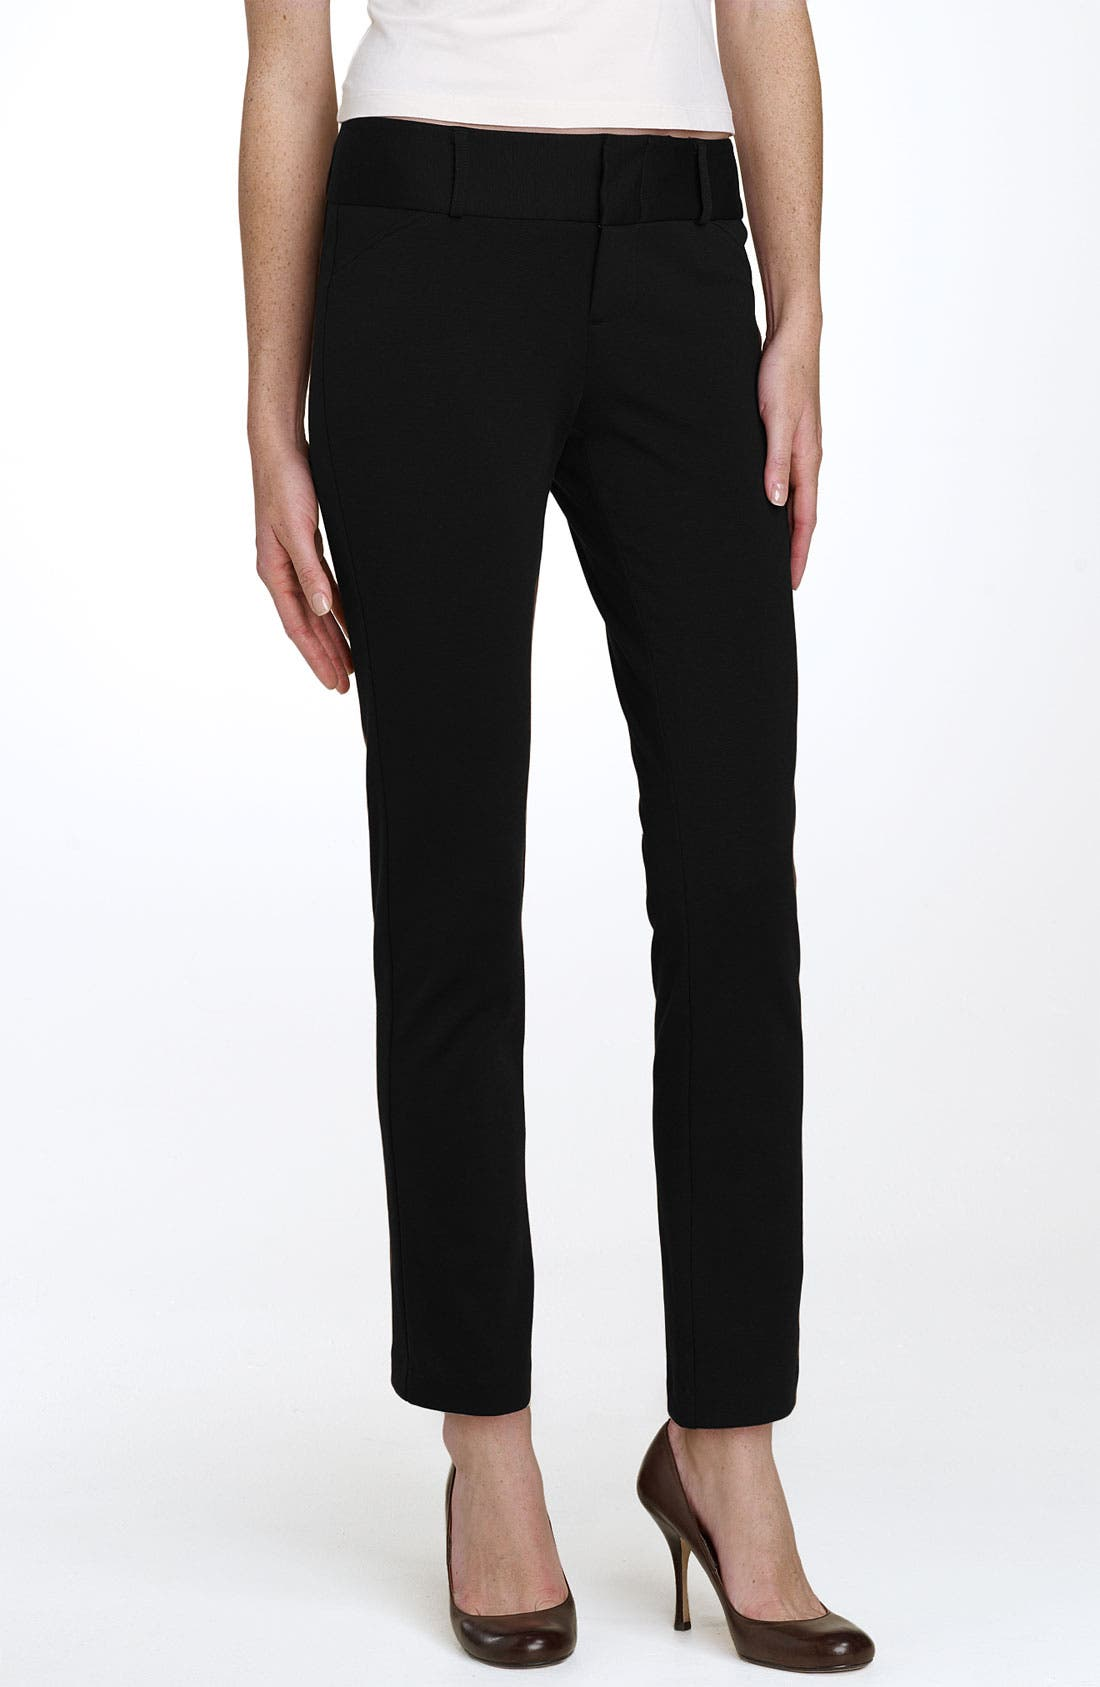 Main Image - MICHAEL Michael Kors Straight Leg Ponte Knit Pants (Regular & Petite)